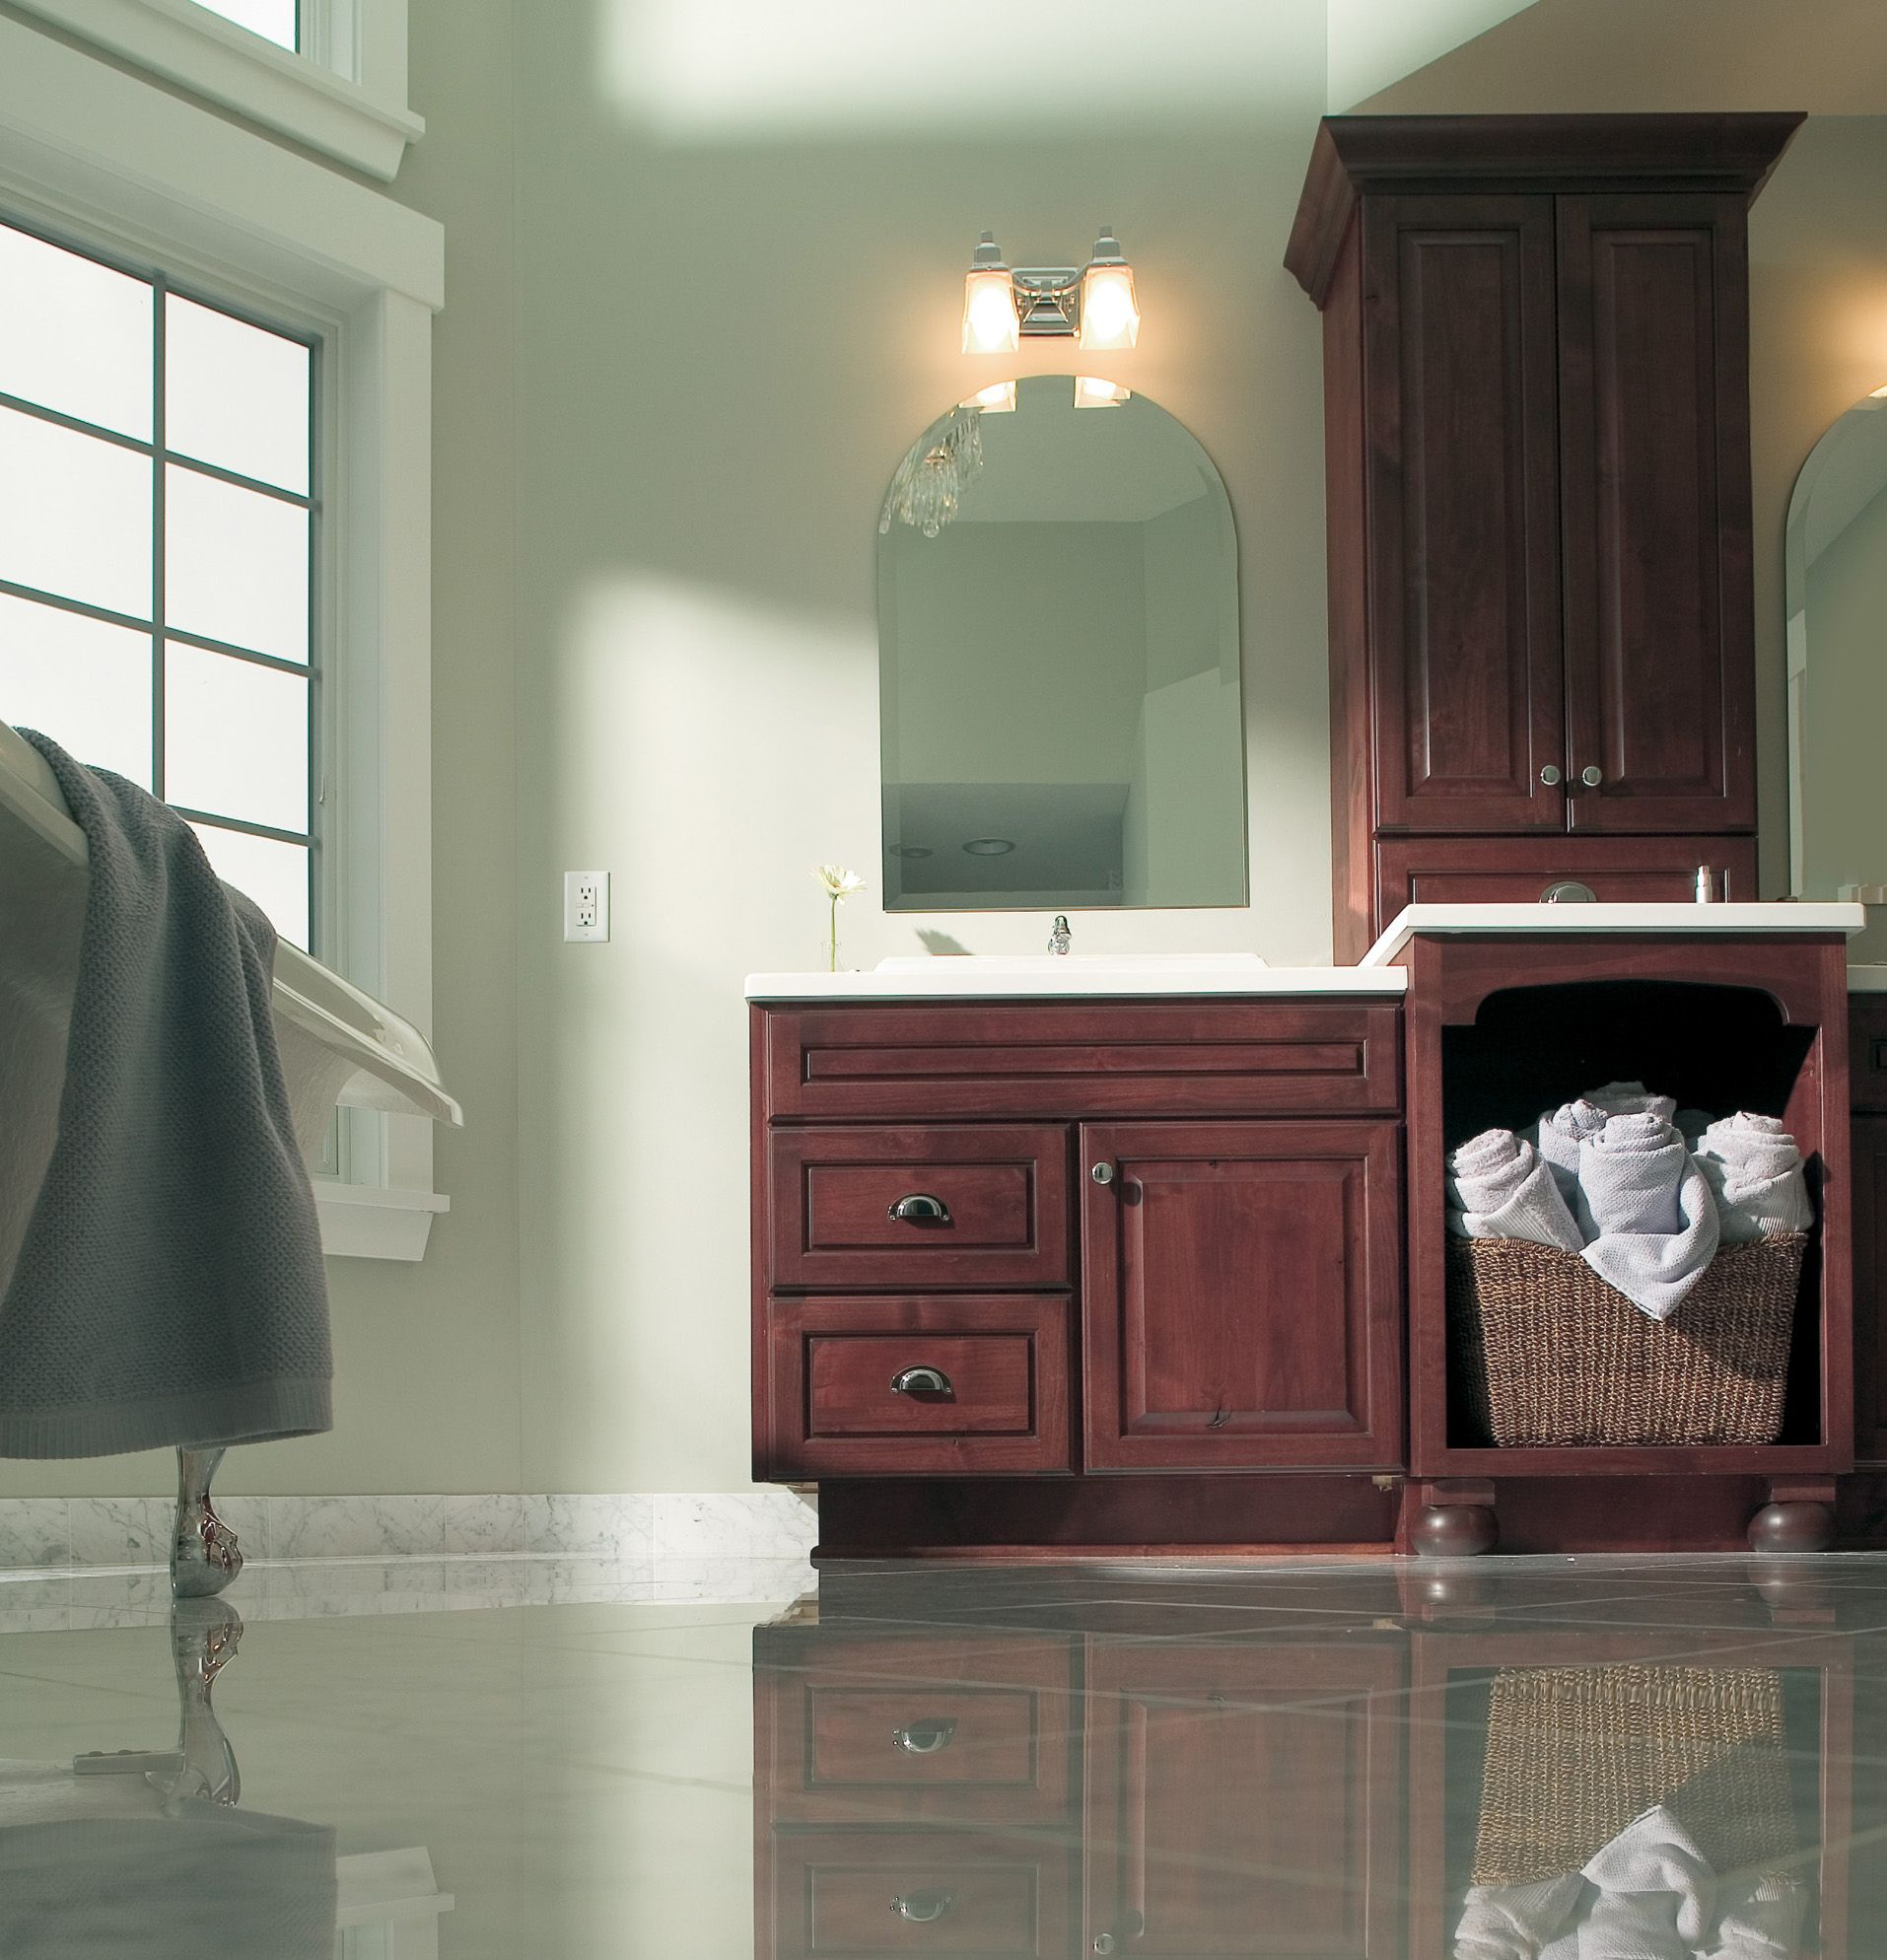 This knotty alder bathroom vanity cabinetry is shown with Dura